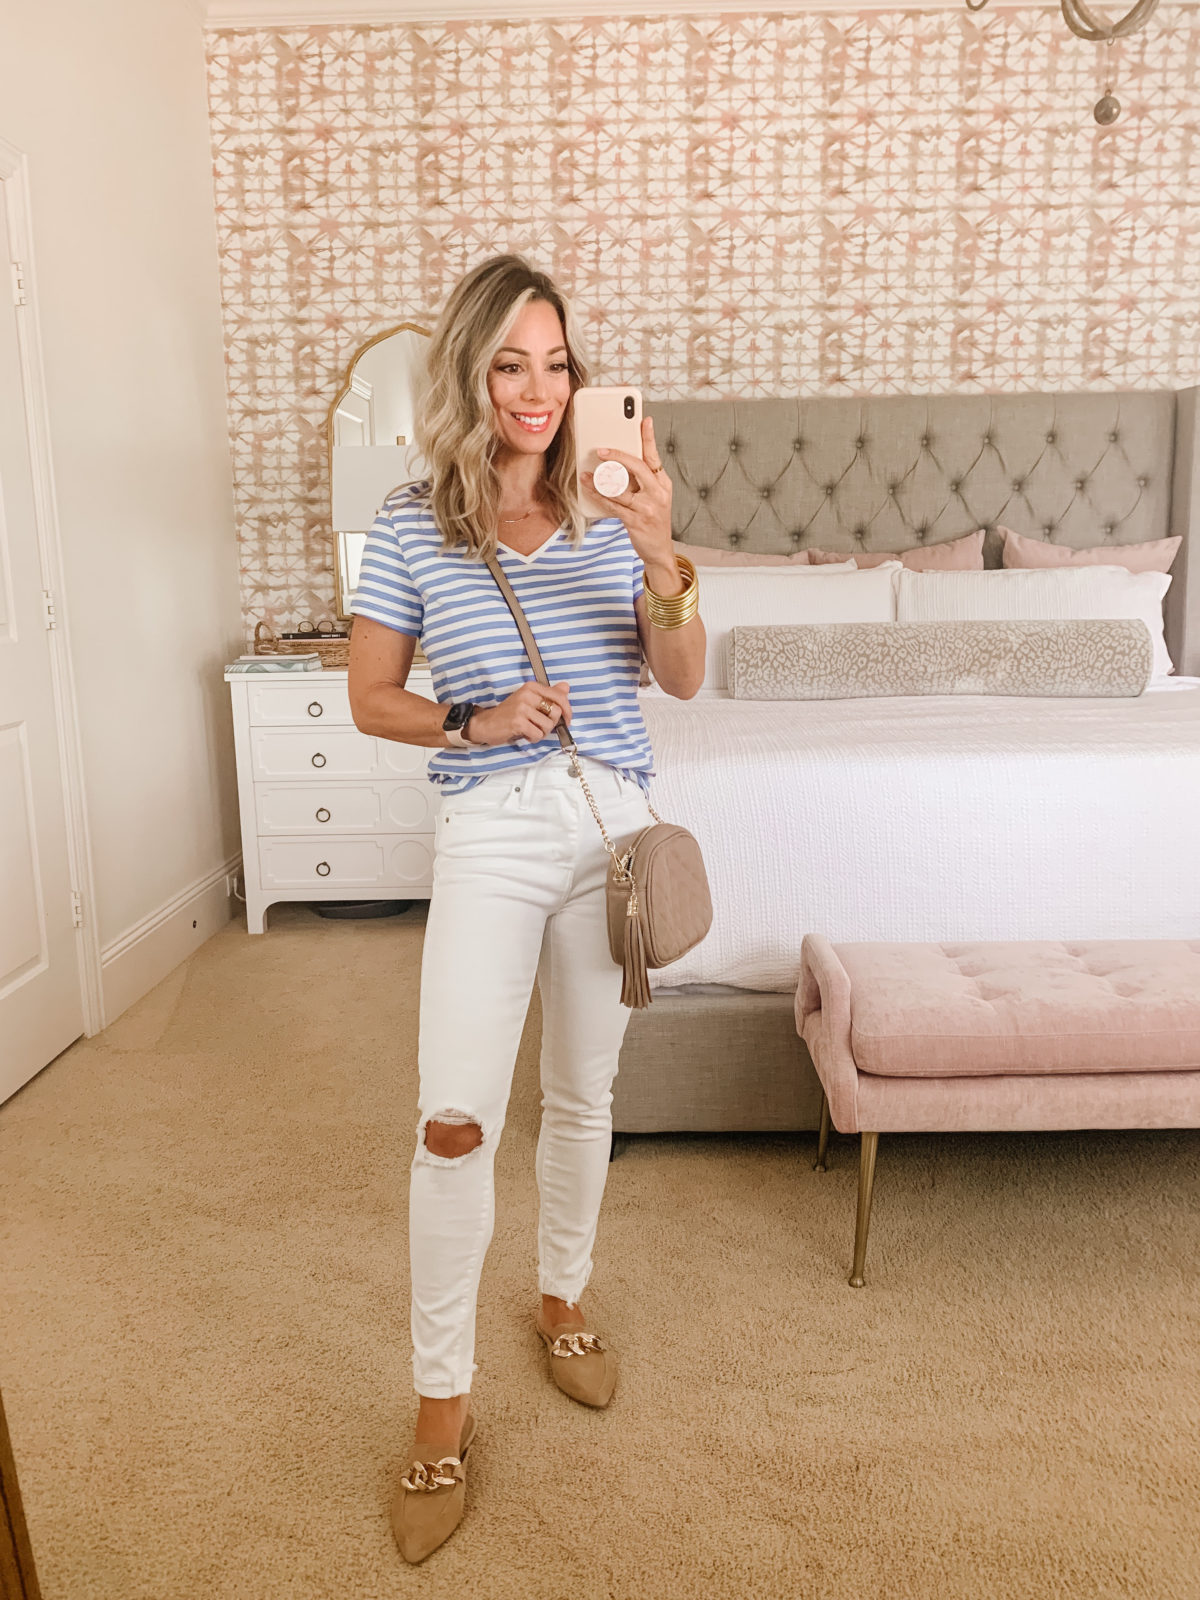 Amazon Fashion Faves, Striped Tee and Jeans with Mules